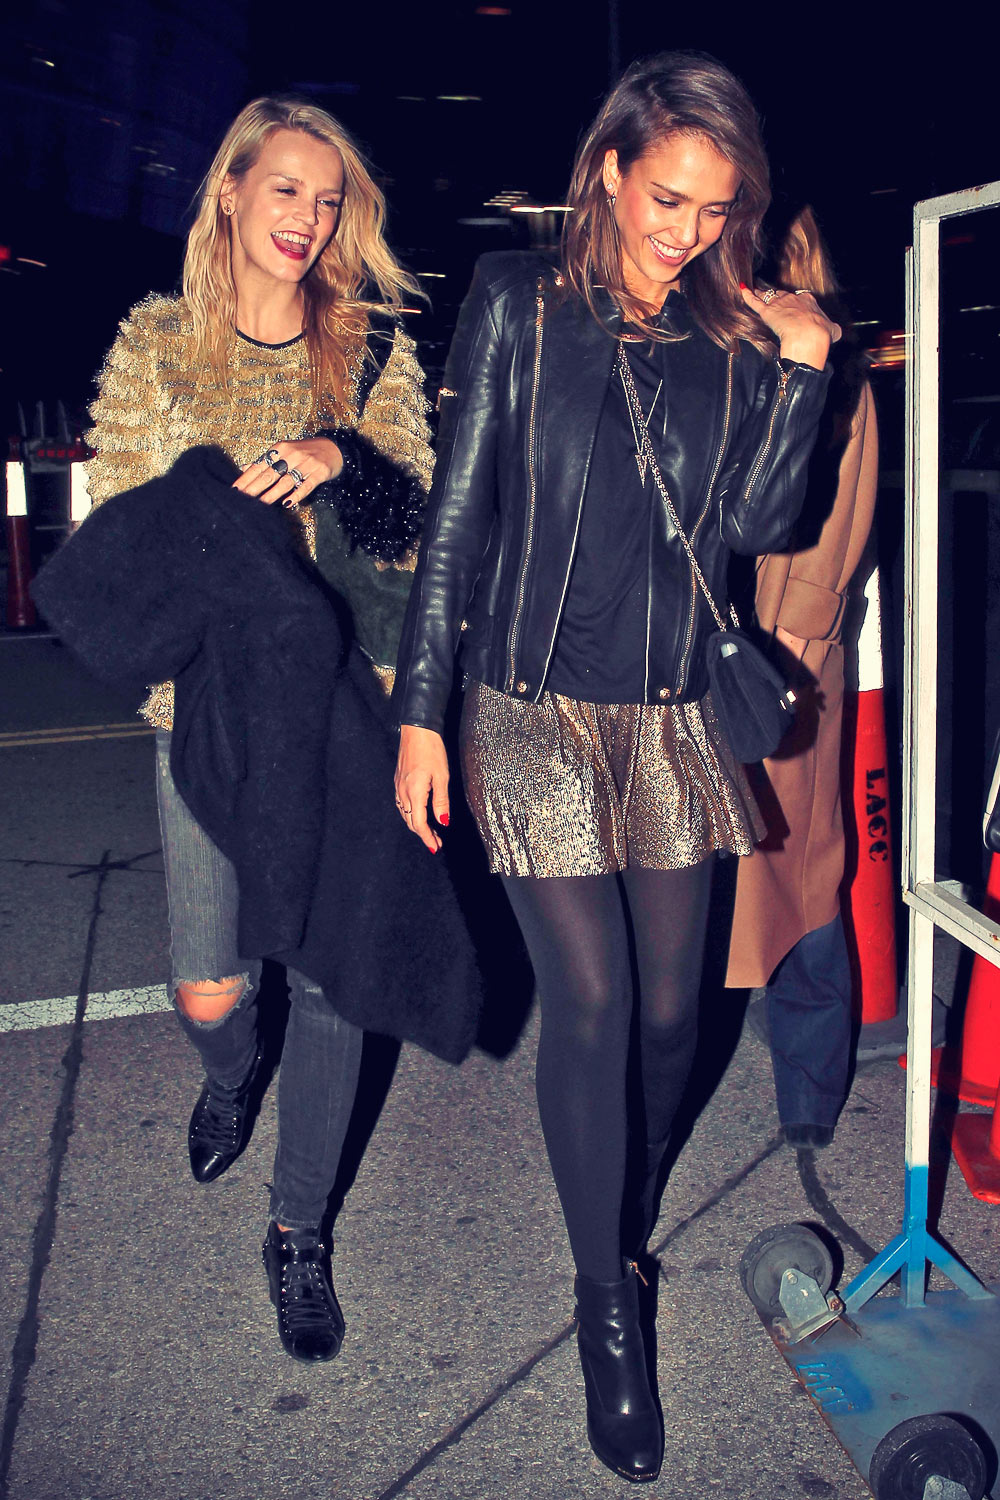 Jessica Alba arrive at Beyoncé's concert in LA